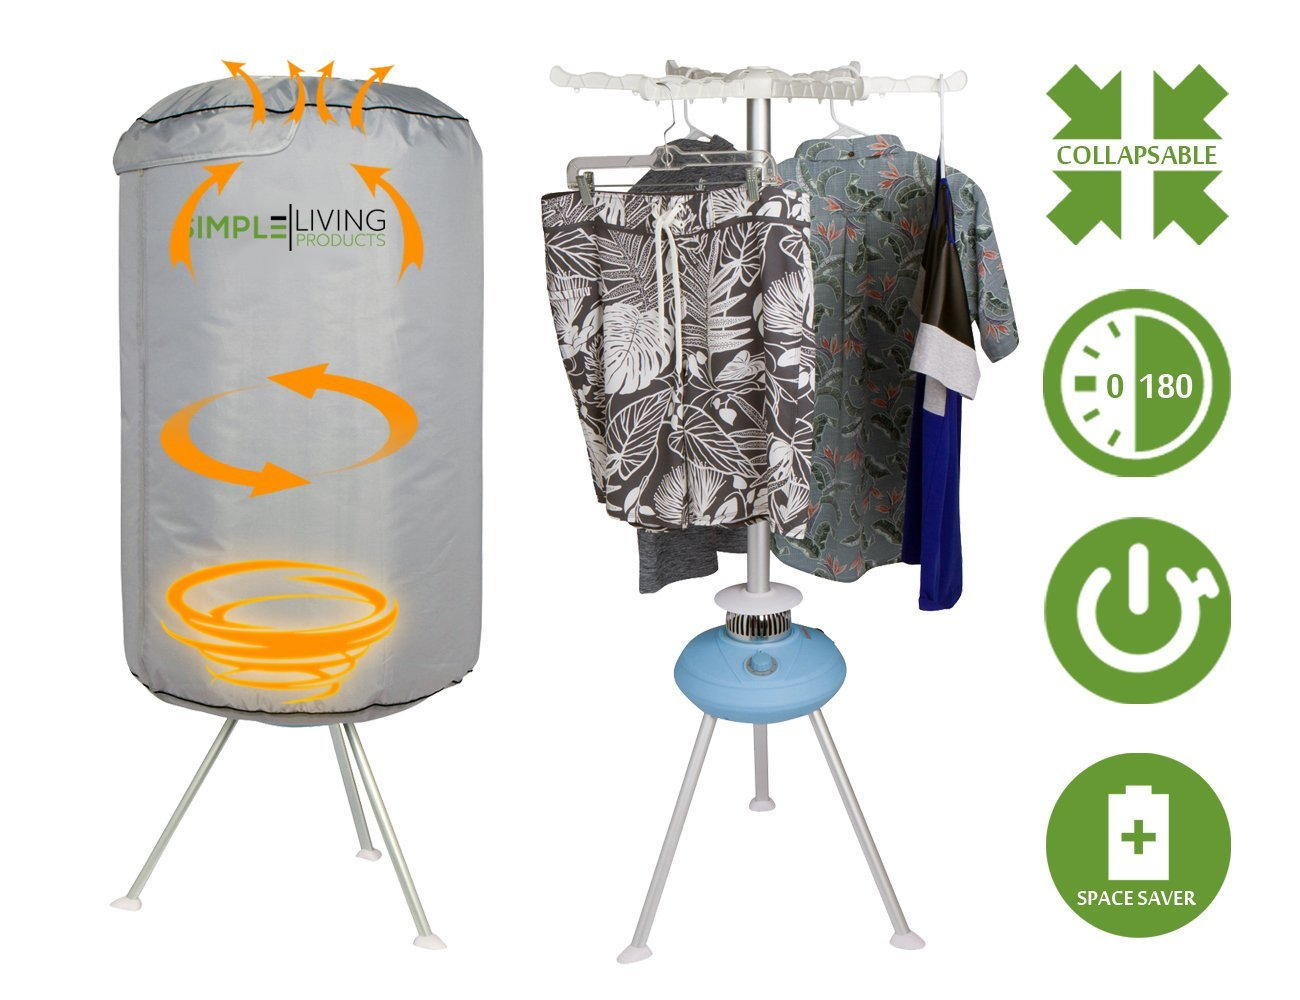 Exceptional Mini Collapsible Round Portable Clothes Dryer   Clothing Dryer That Dries  Clothes Within 30 Minutes   Holds Up To 10KG   Walmart.com